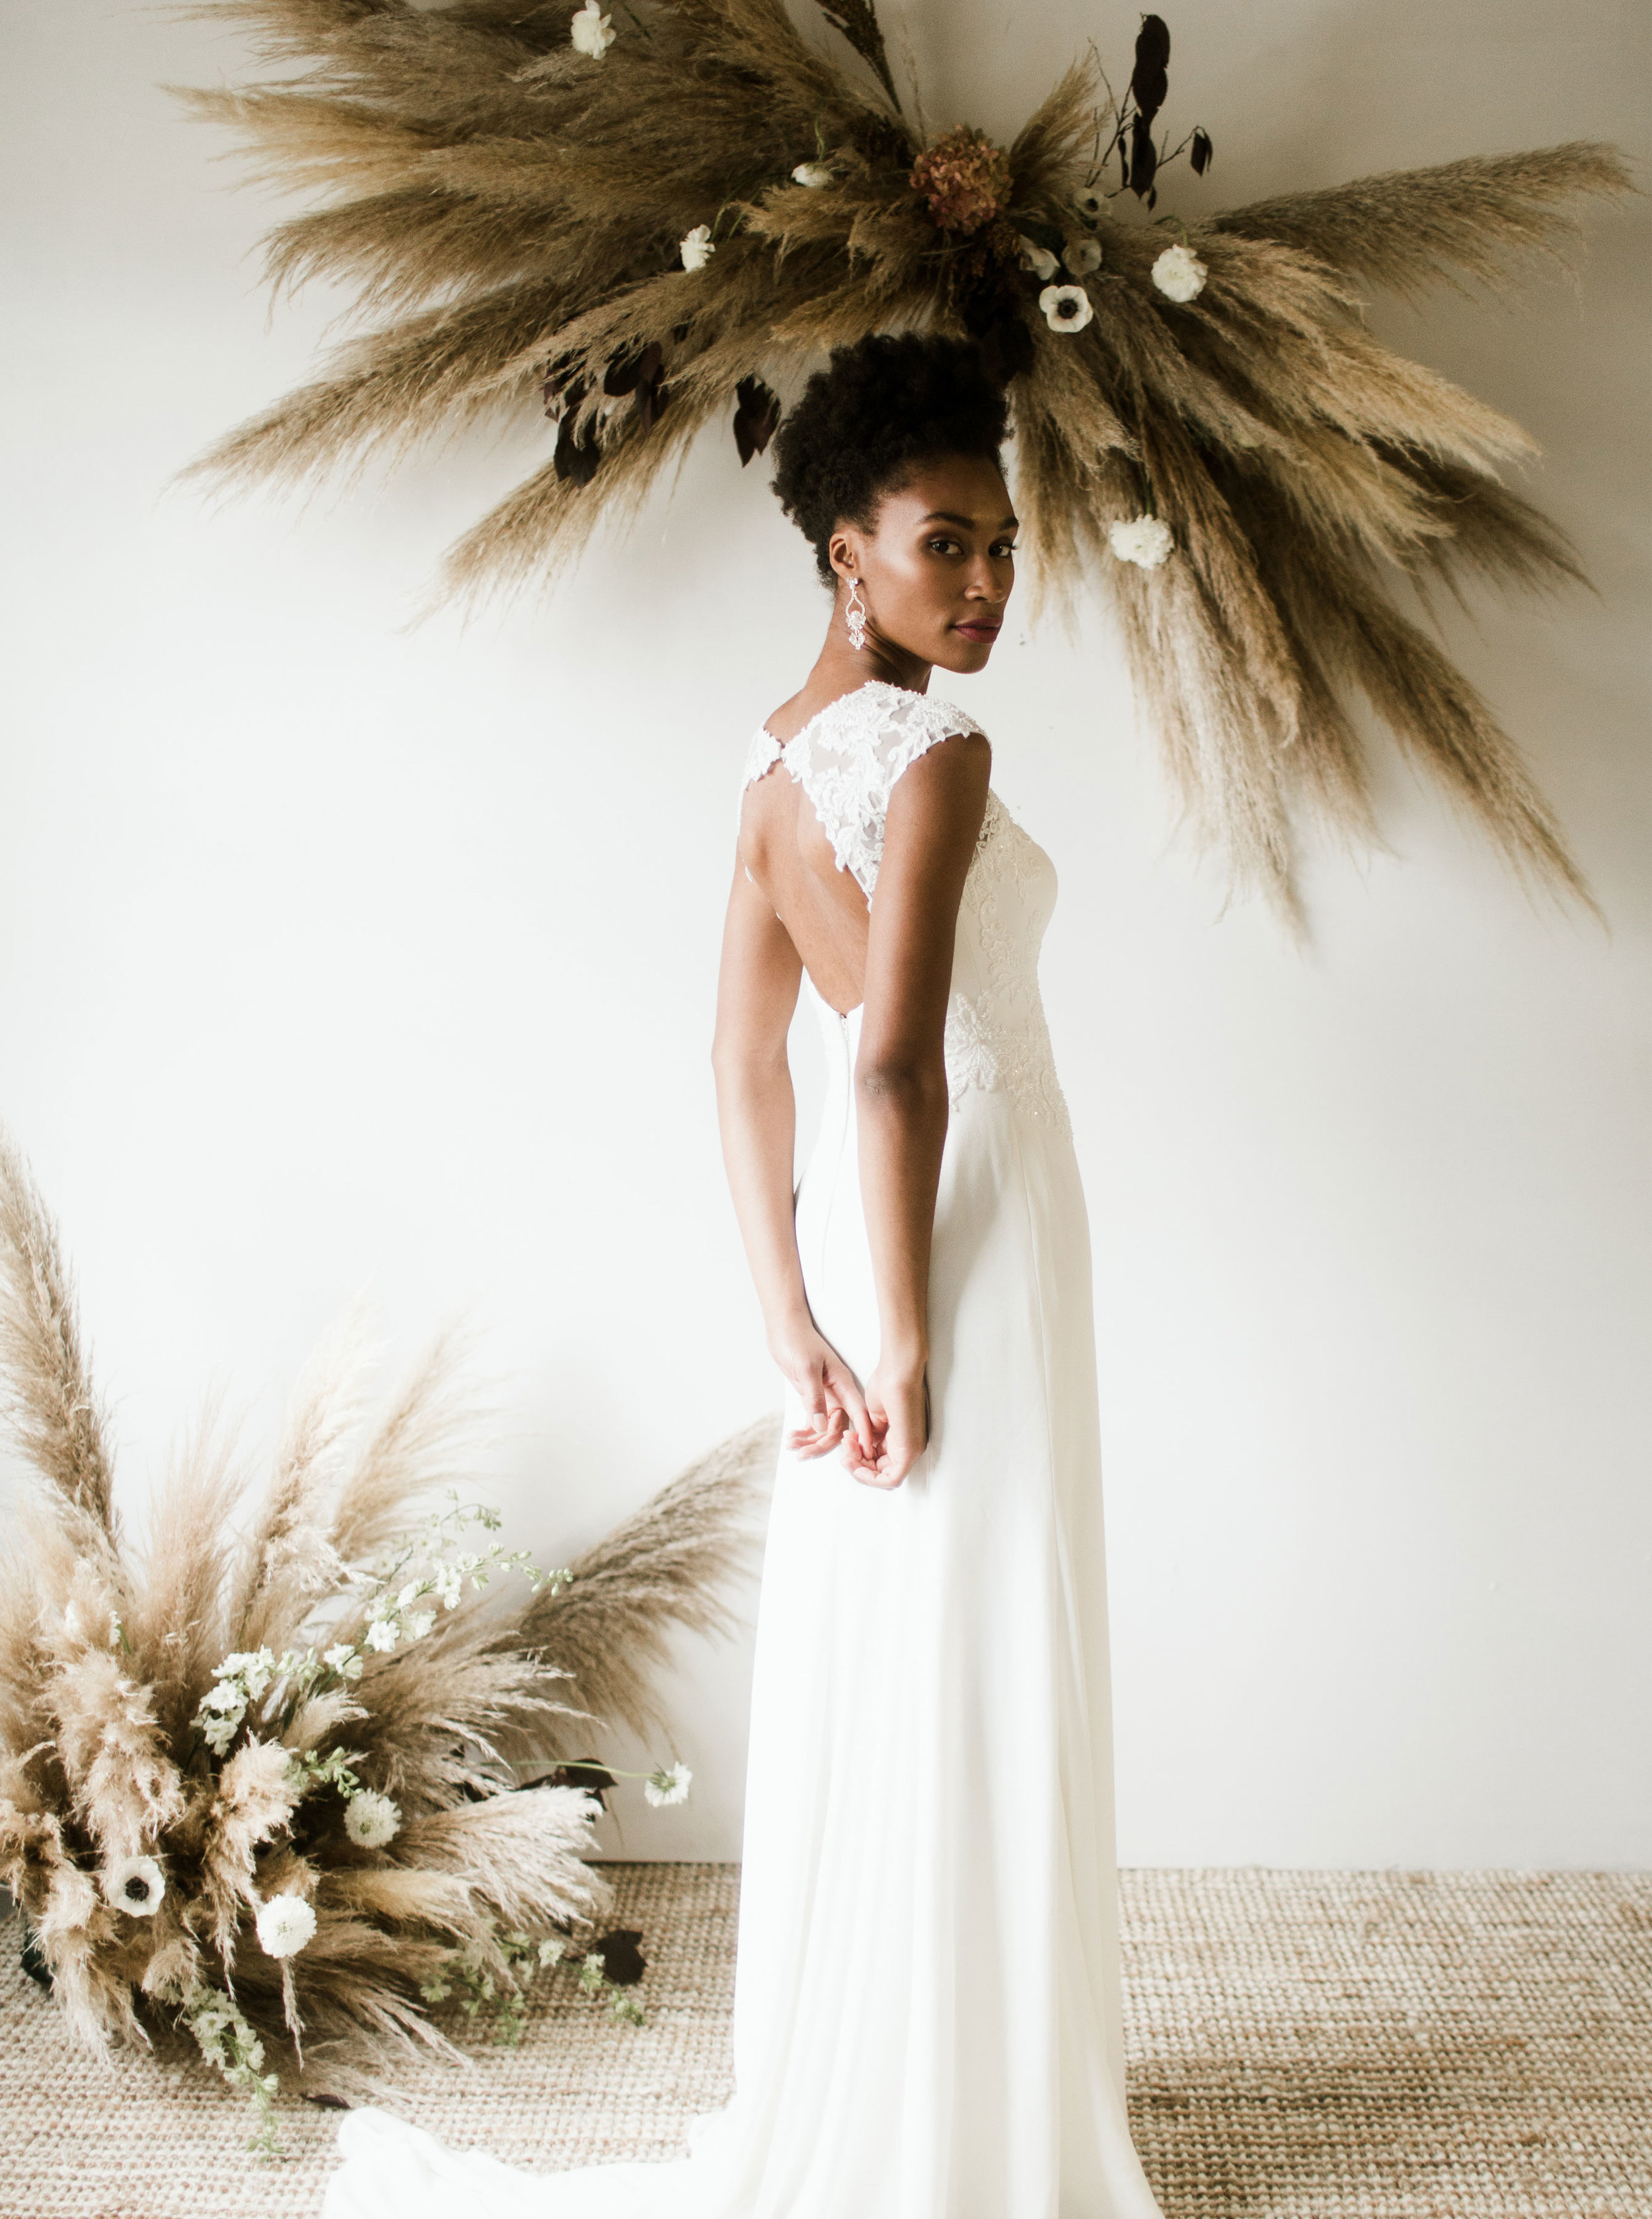 style me pretty for david's bridal /  becca brendler photography